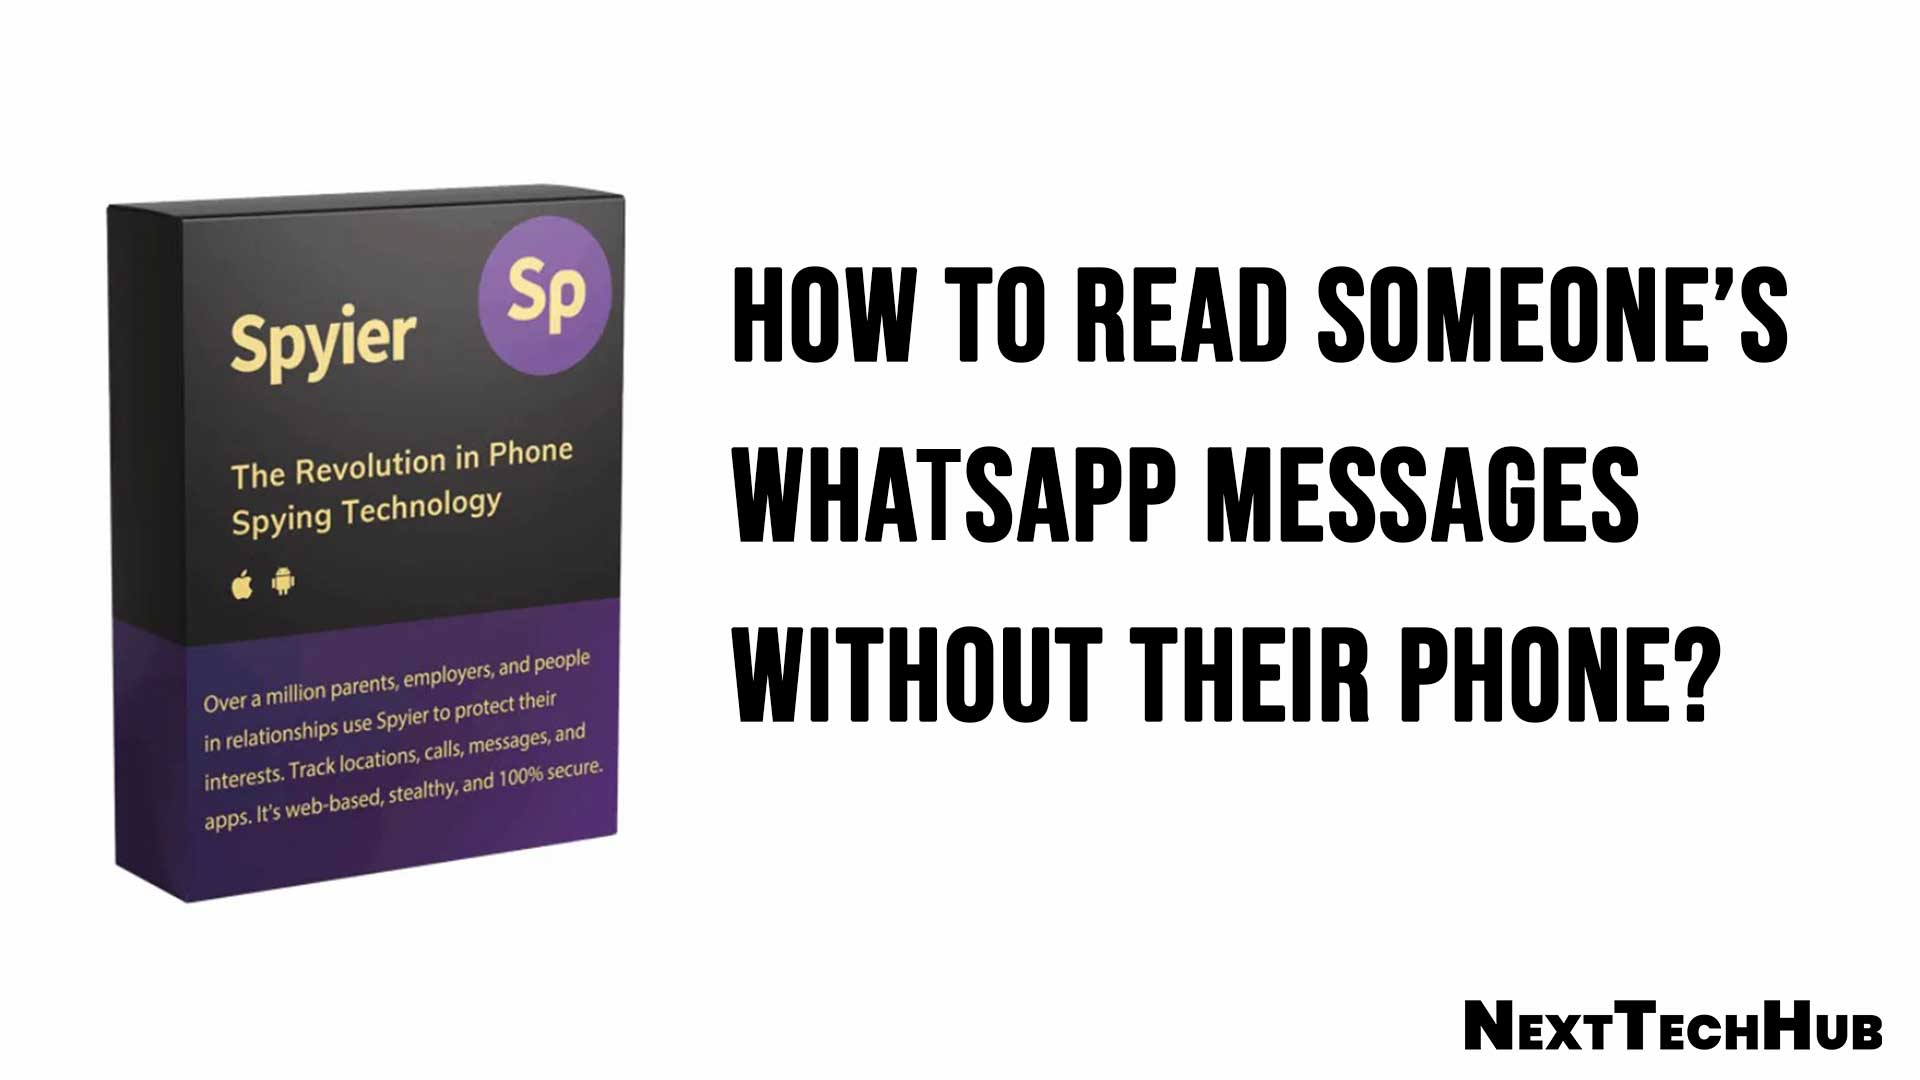 How to Read Someone WhatsApp Messages Without Their Phone